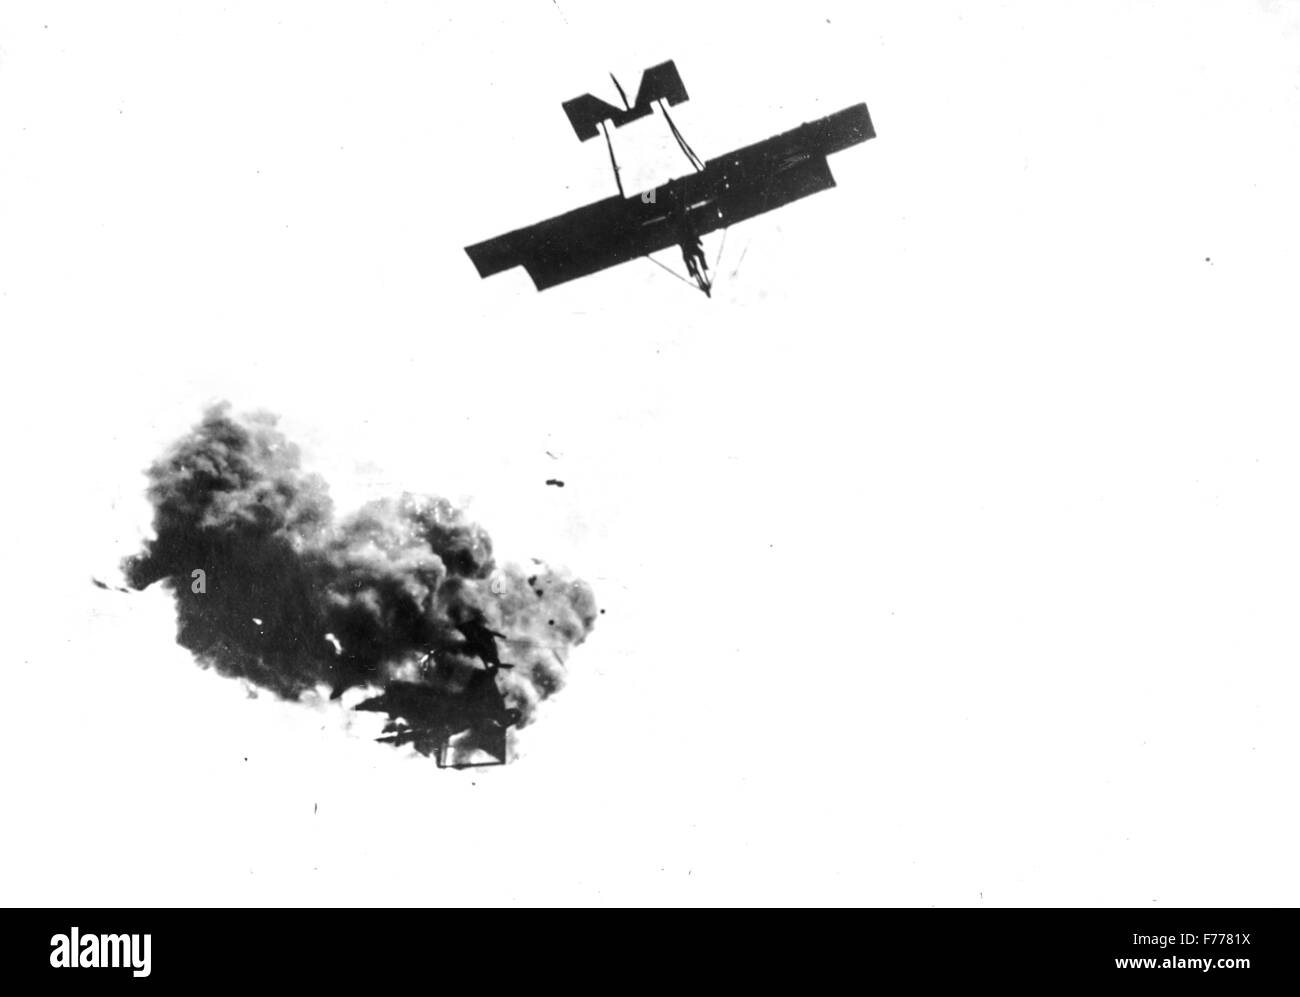 Italian aircraft hit by enemy air defenses in the early months of the war,1917 - Stock Image